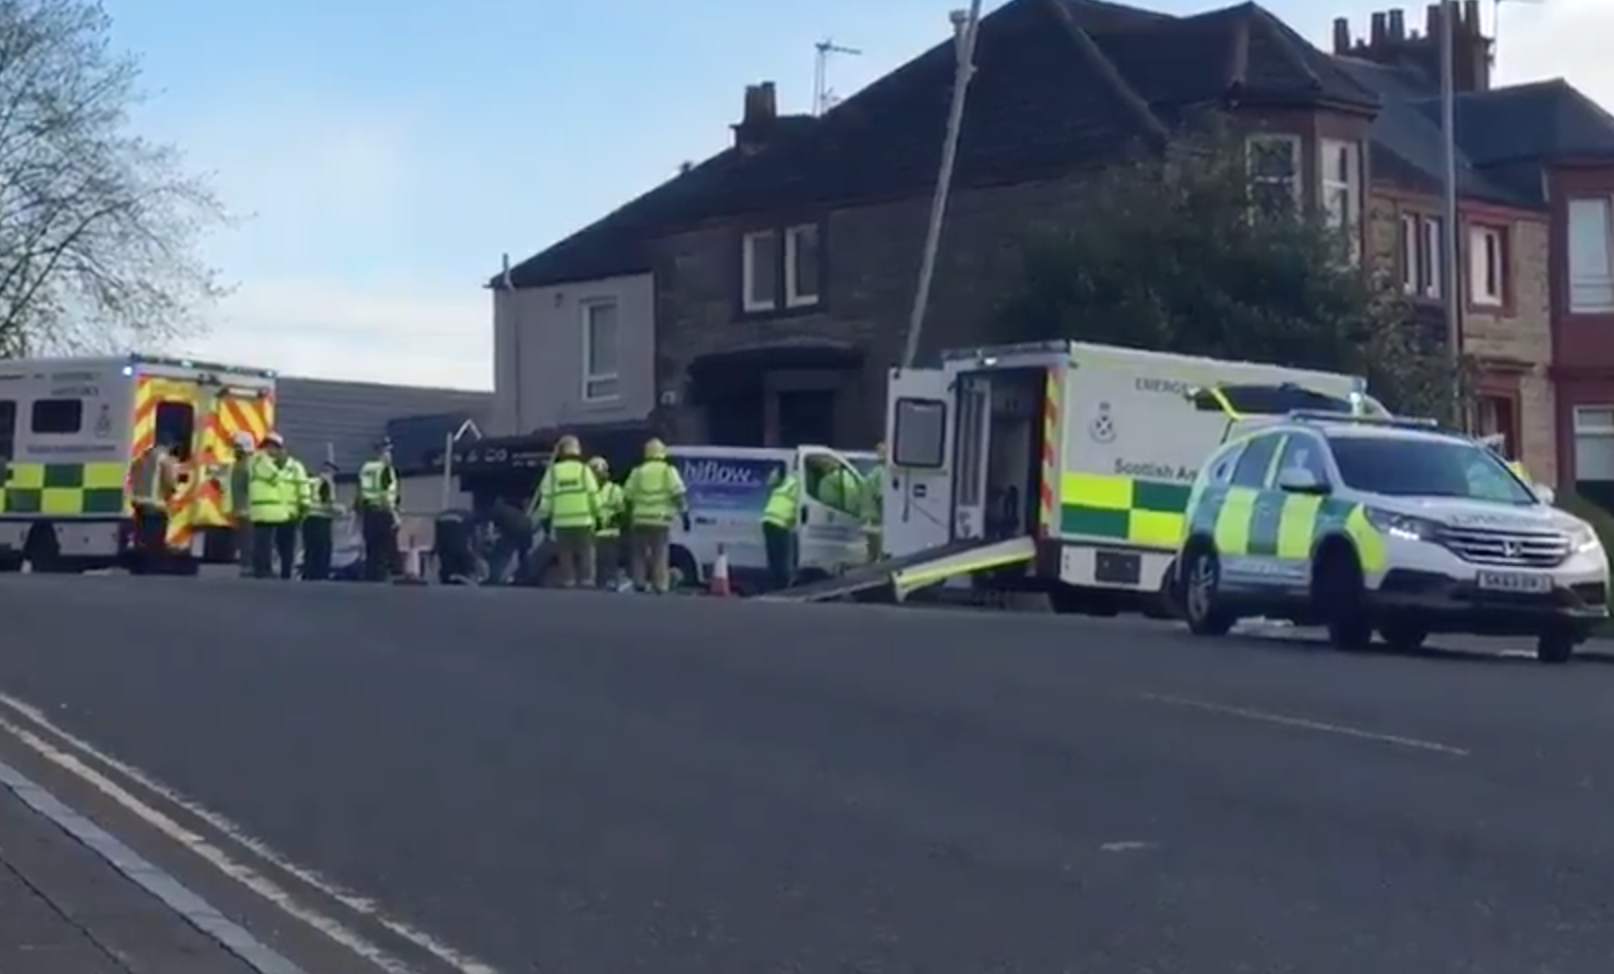 Scene of the crash on Kilbowie Road, Clydebank